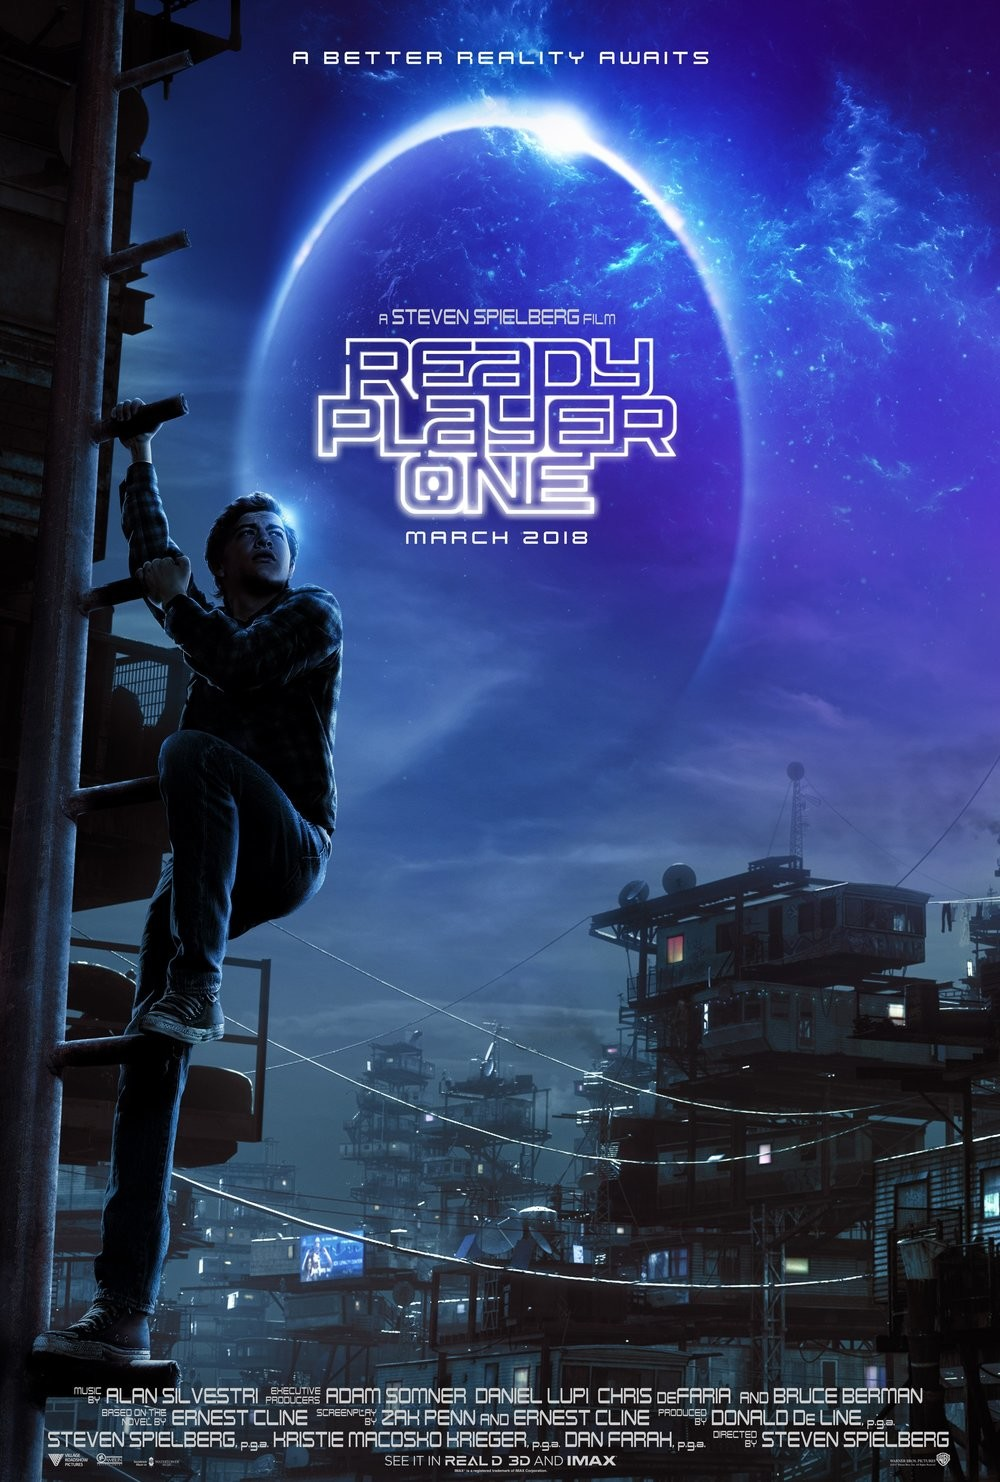 first-movie-poster-released-for-ready-player-one1.jpeg